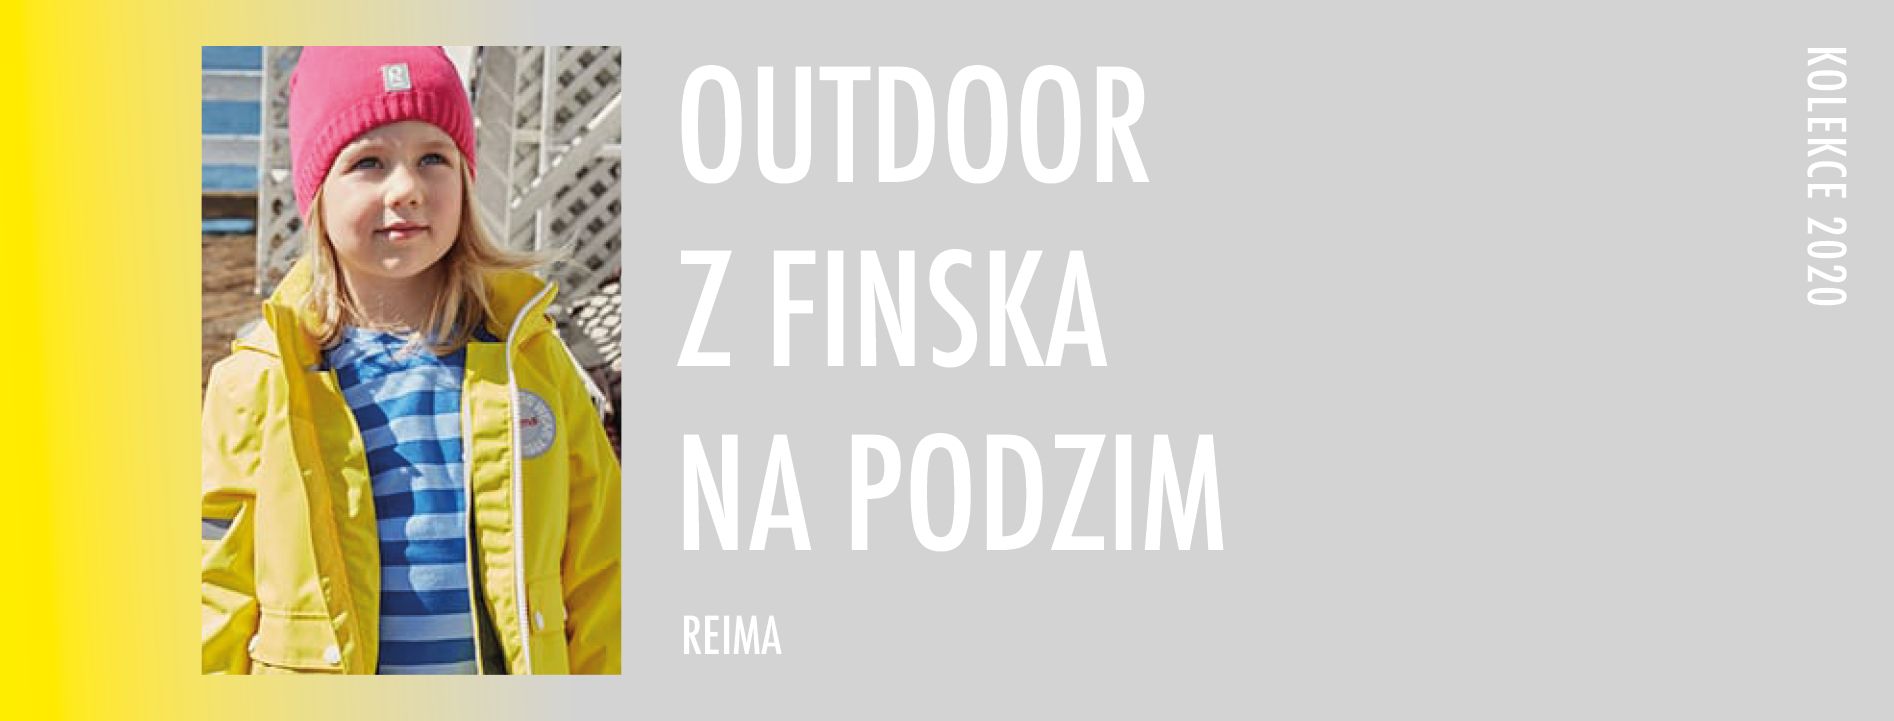 Outdoor z Finska